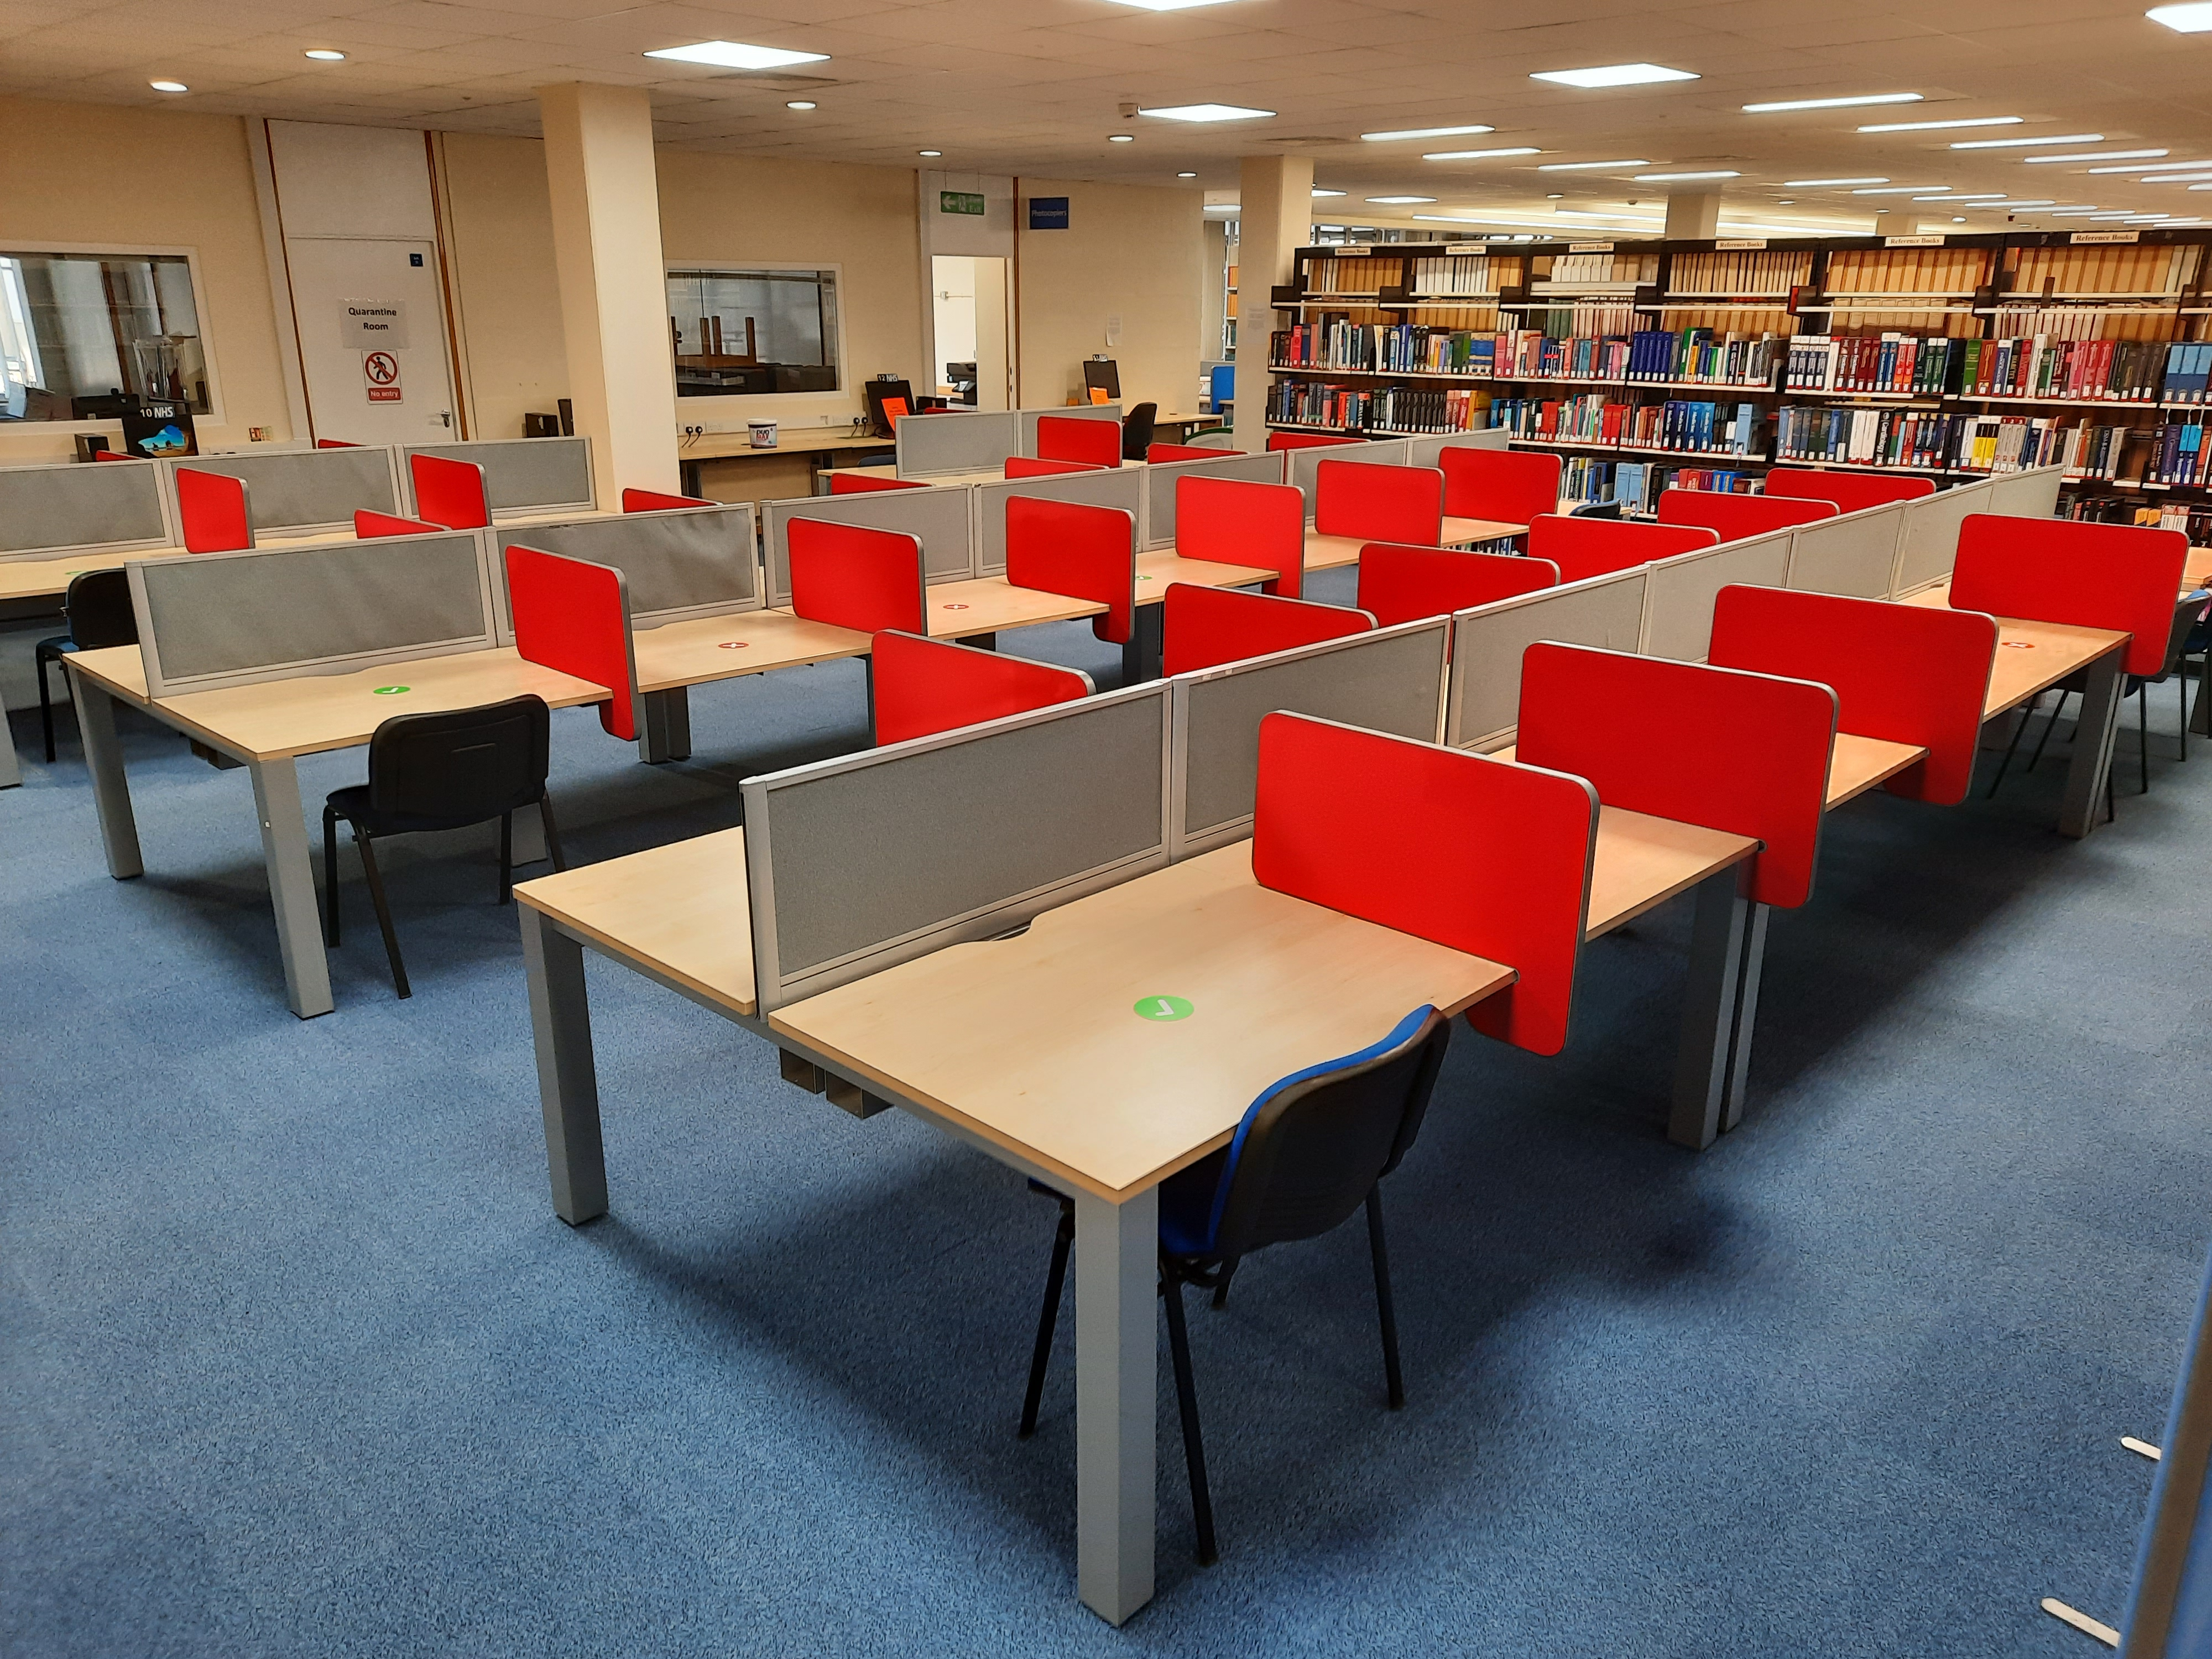 Study desks and the Reference books.